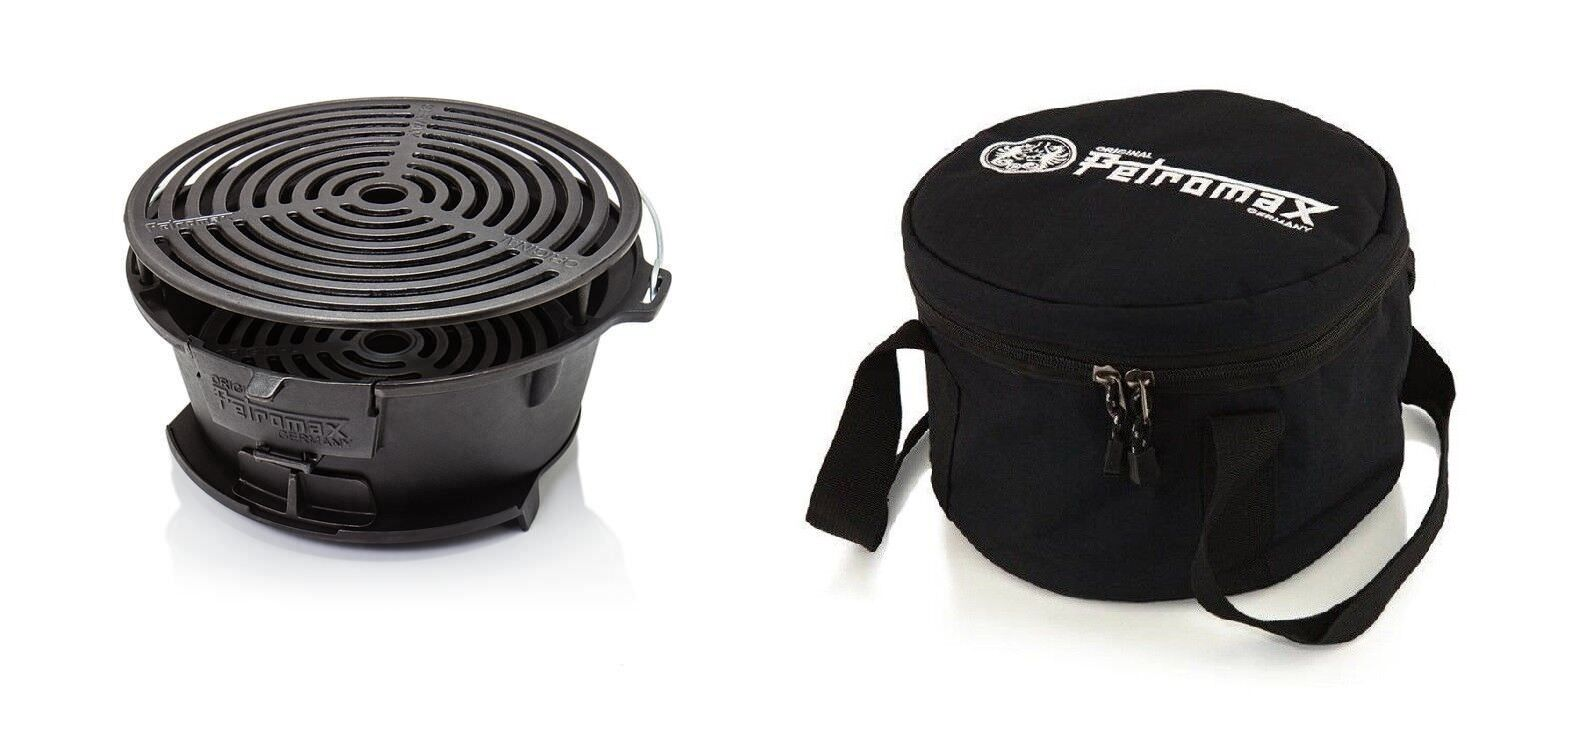 Petromax Feuergrill tg3 Grill Holzkohlegrill Gusseisen Feuerschale Feuerstelle Feuerstelle Feuerschale 15760a